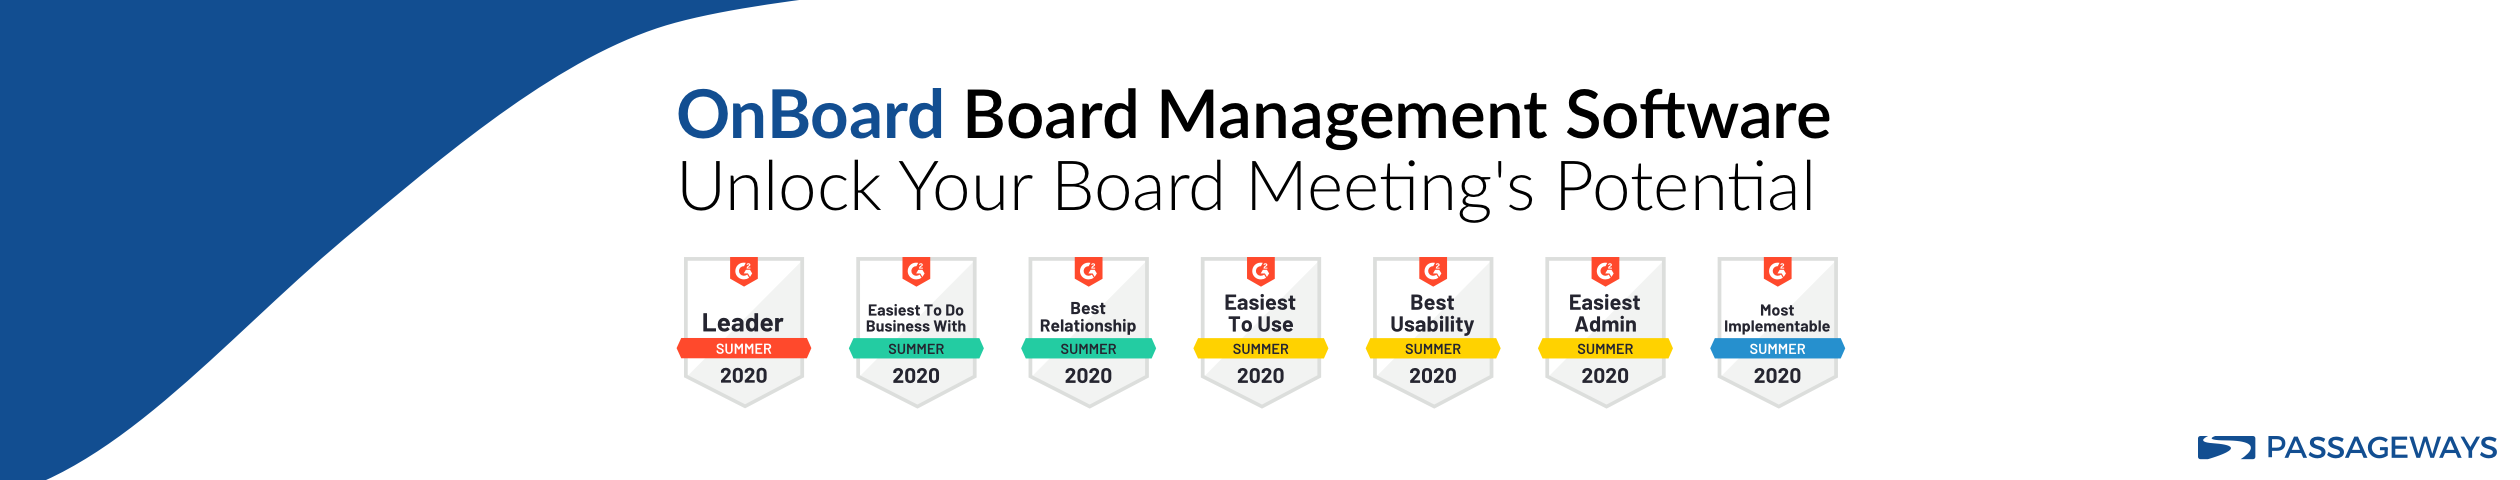 OnBoard Board Management Software